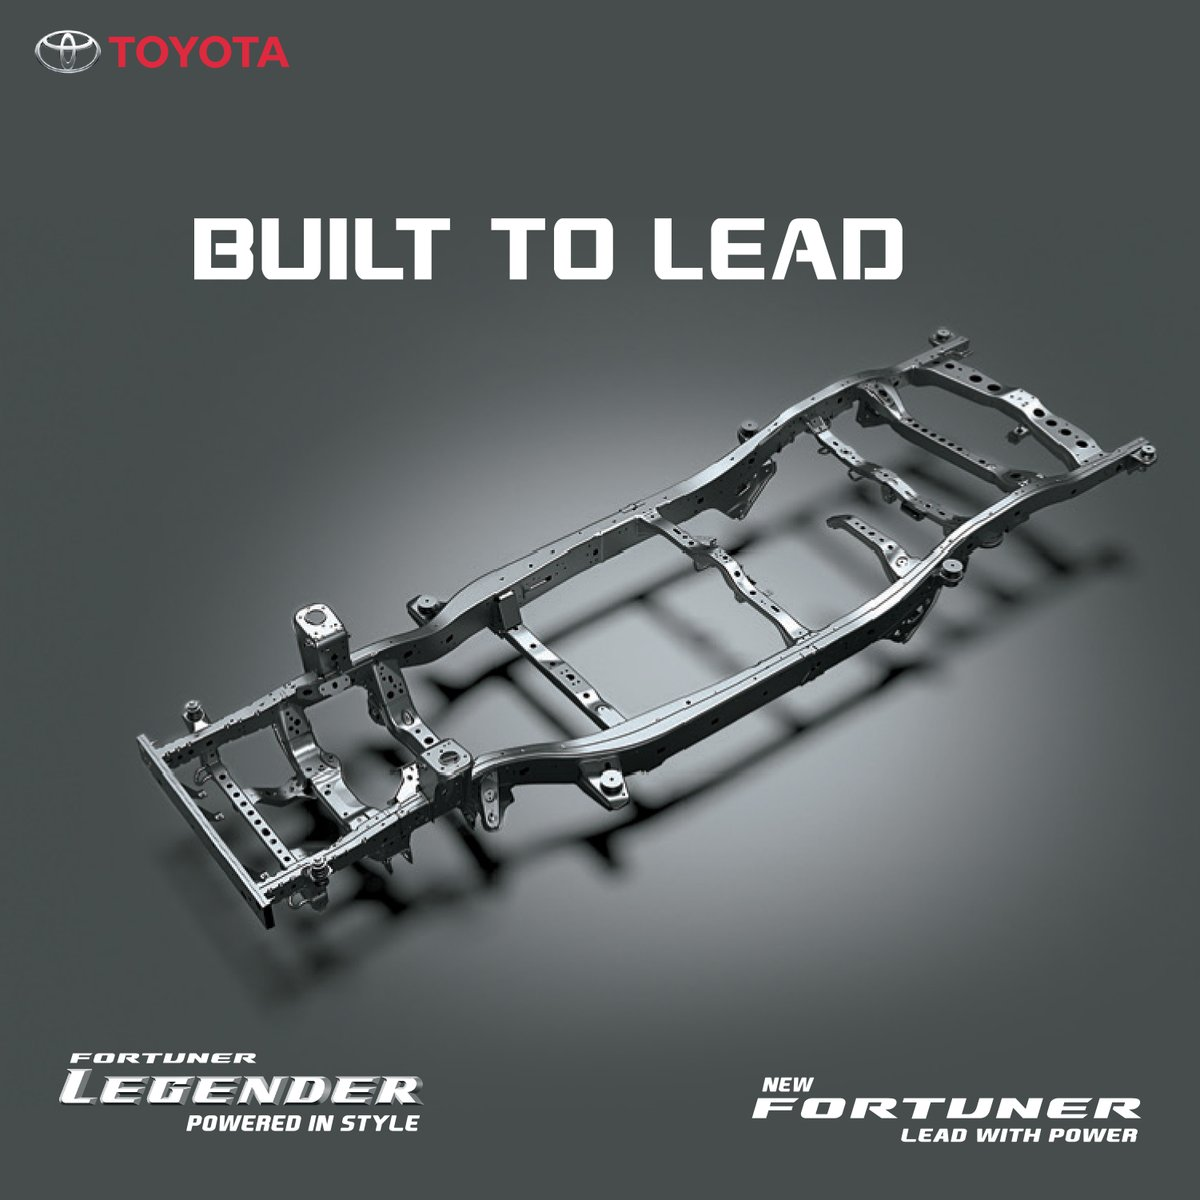 The frame based platform of the new Legender and Fortuner provides extraordinary toughness and higher stability in the harshest of environments.  E-book now! Visit: https://t.co/0BFxesvXwo  #PoweredInStyle #LeadWithPower #NewFortuner #Legender #Toyota #ToyotaIndia https://t.co/yBqxiv164F